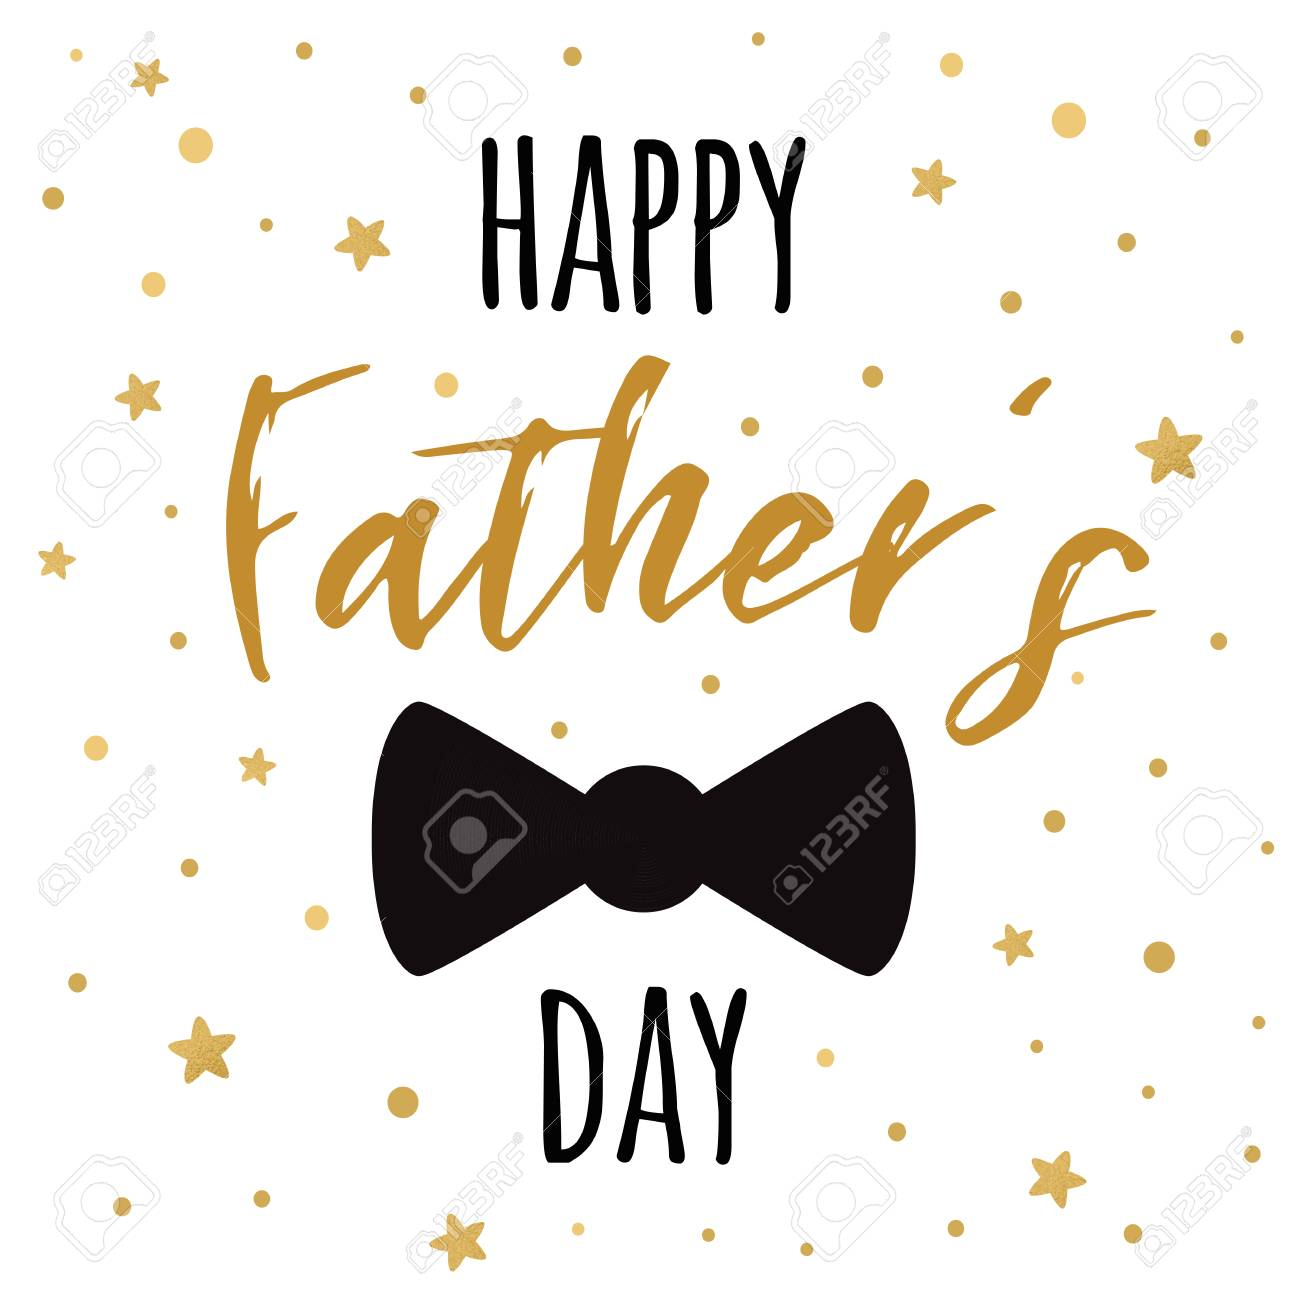 graphic regarding Happy Father's Day Banner Printable named Fathers working day banner layout with lettering, black bow tie erfly